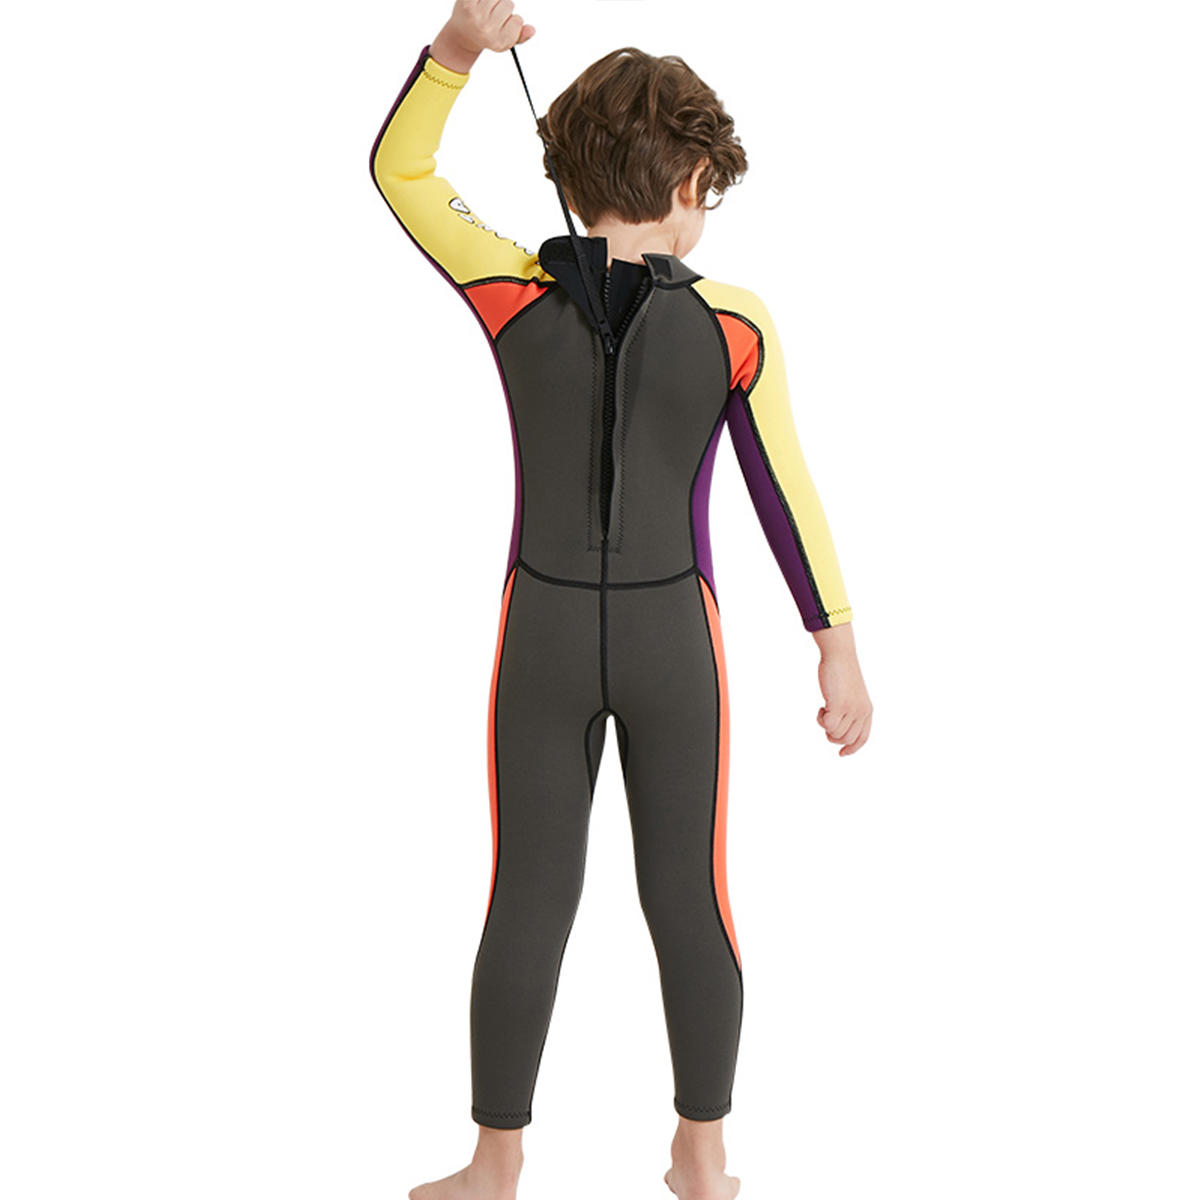 Kids Boy Scuba One-piece Diving Suit UV Protection Thermal Snorkeling Wetsuit Surfing Swimwear - 11